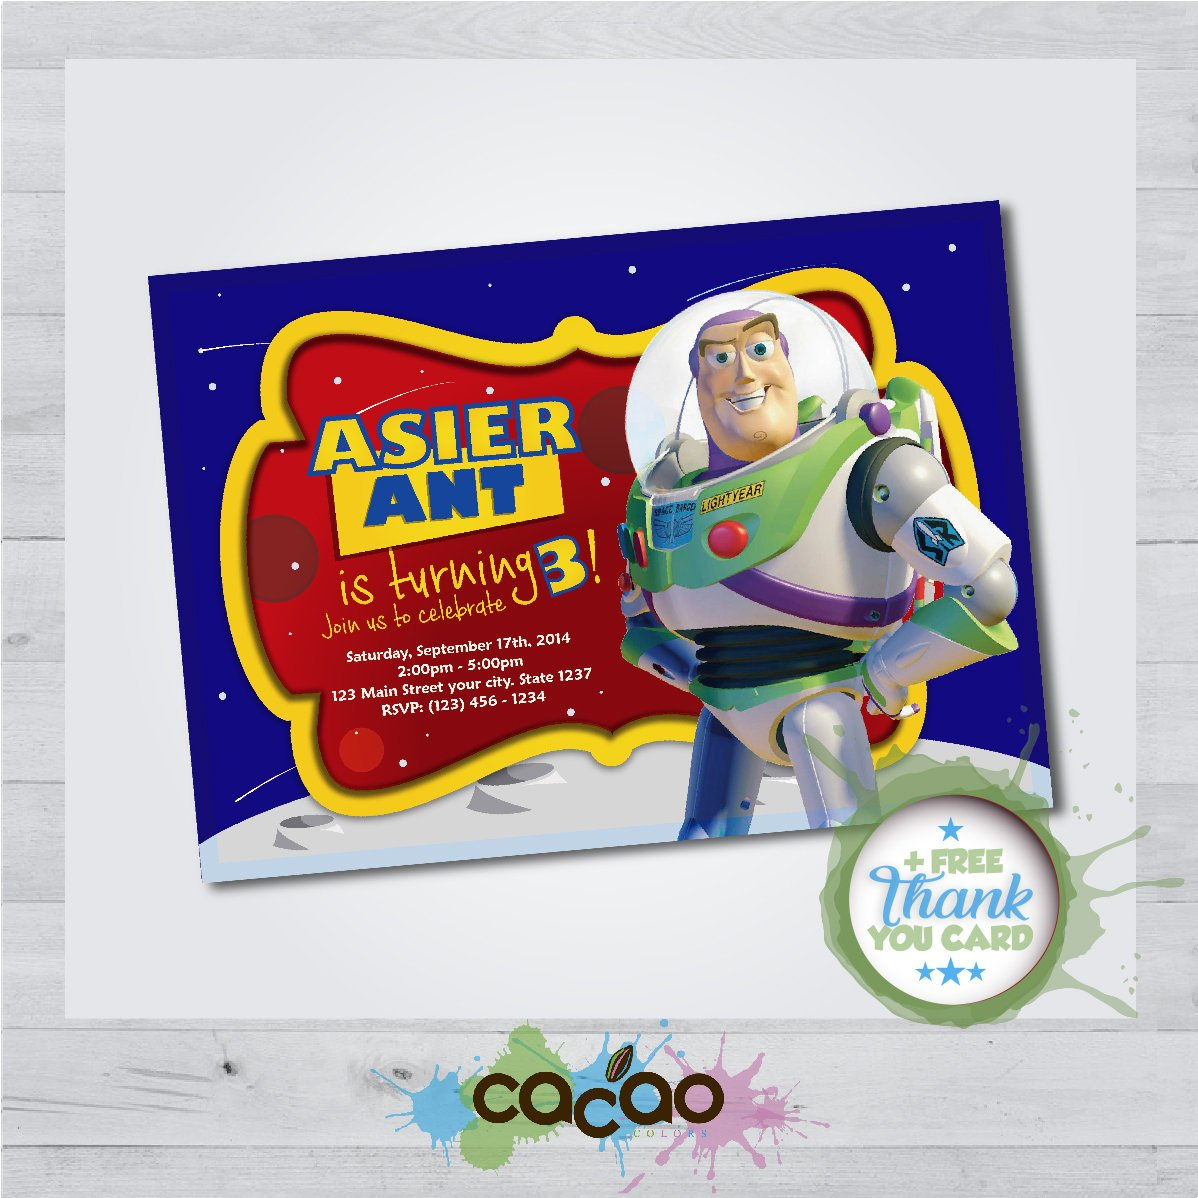 Toy Story Buzz Lightyear Invitation Toy Story Buzz Lightyear | Etsy - Toy Story Birthday Card Printable Free